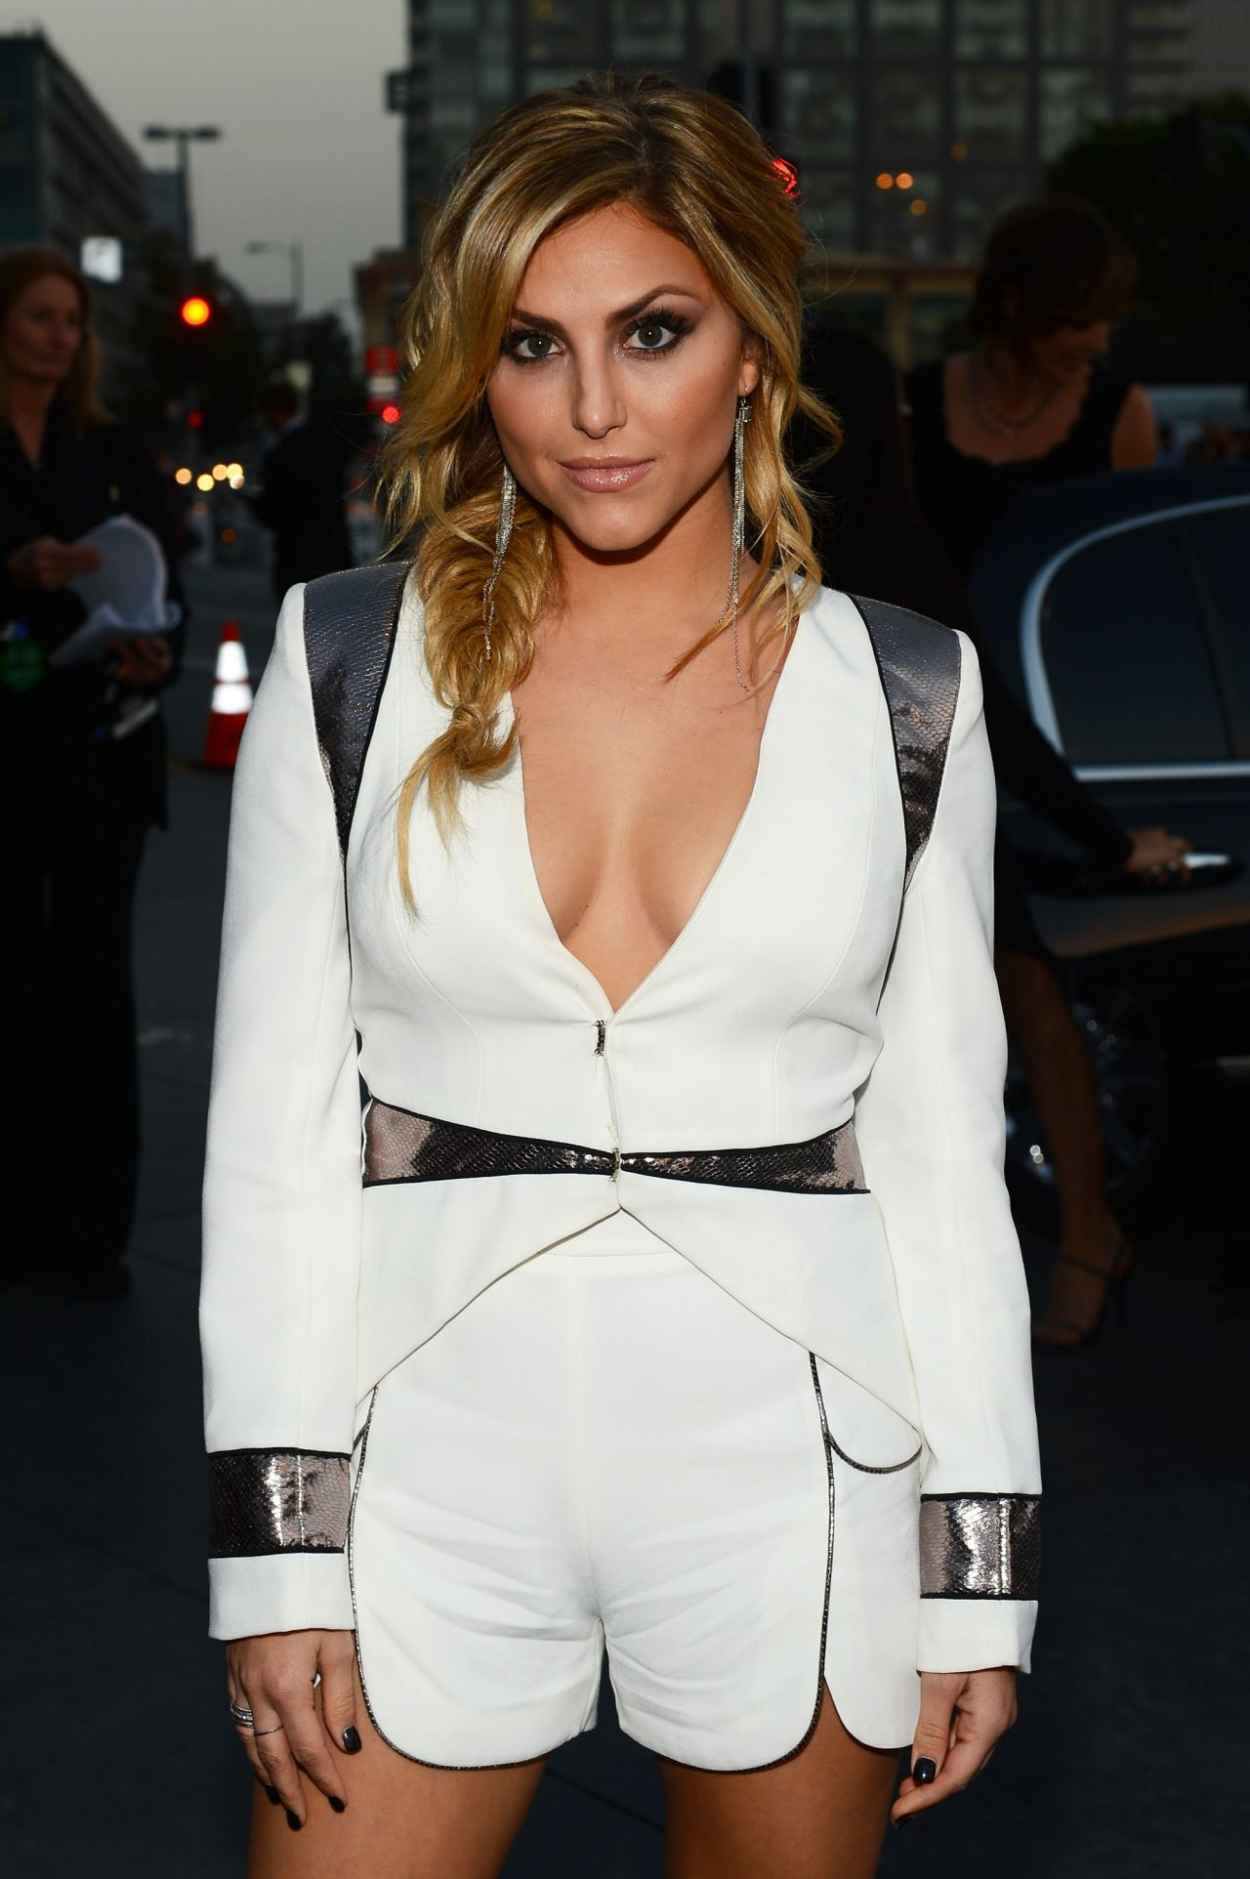 cassie scerbo 2015cassie scerbo instagram, cassie scerbo gif, cassie scerbo interview, cassie scerbo vk, cassie scerbo facebook, cassie scerbo snapchat, cassie scerbo official website, cassie scerbo family, cassie scerbo, cassie scerbo movies, cassie scerbo bikini, cassie scerbo sharknado 3, cassie scerbo 2015, cassandra scerbo twitter, cassie scerbo tumblr, cassie scerbo and cody longo, cassie scerbo wiki, cassie scerbo fansite, cassie scerbo boyfriend, cassie scerbo net worth